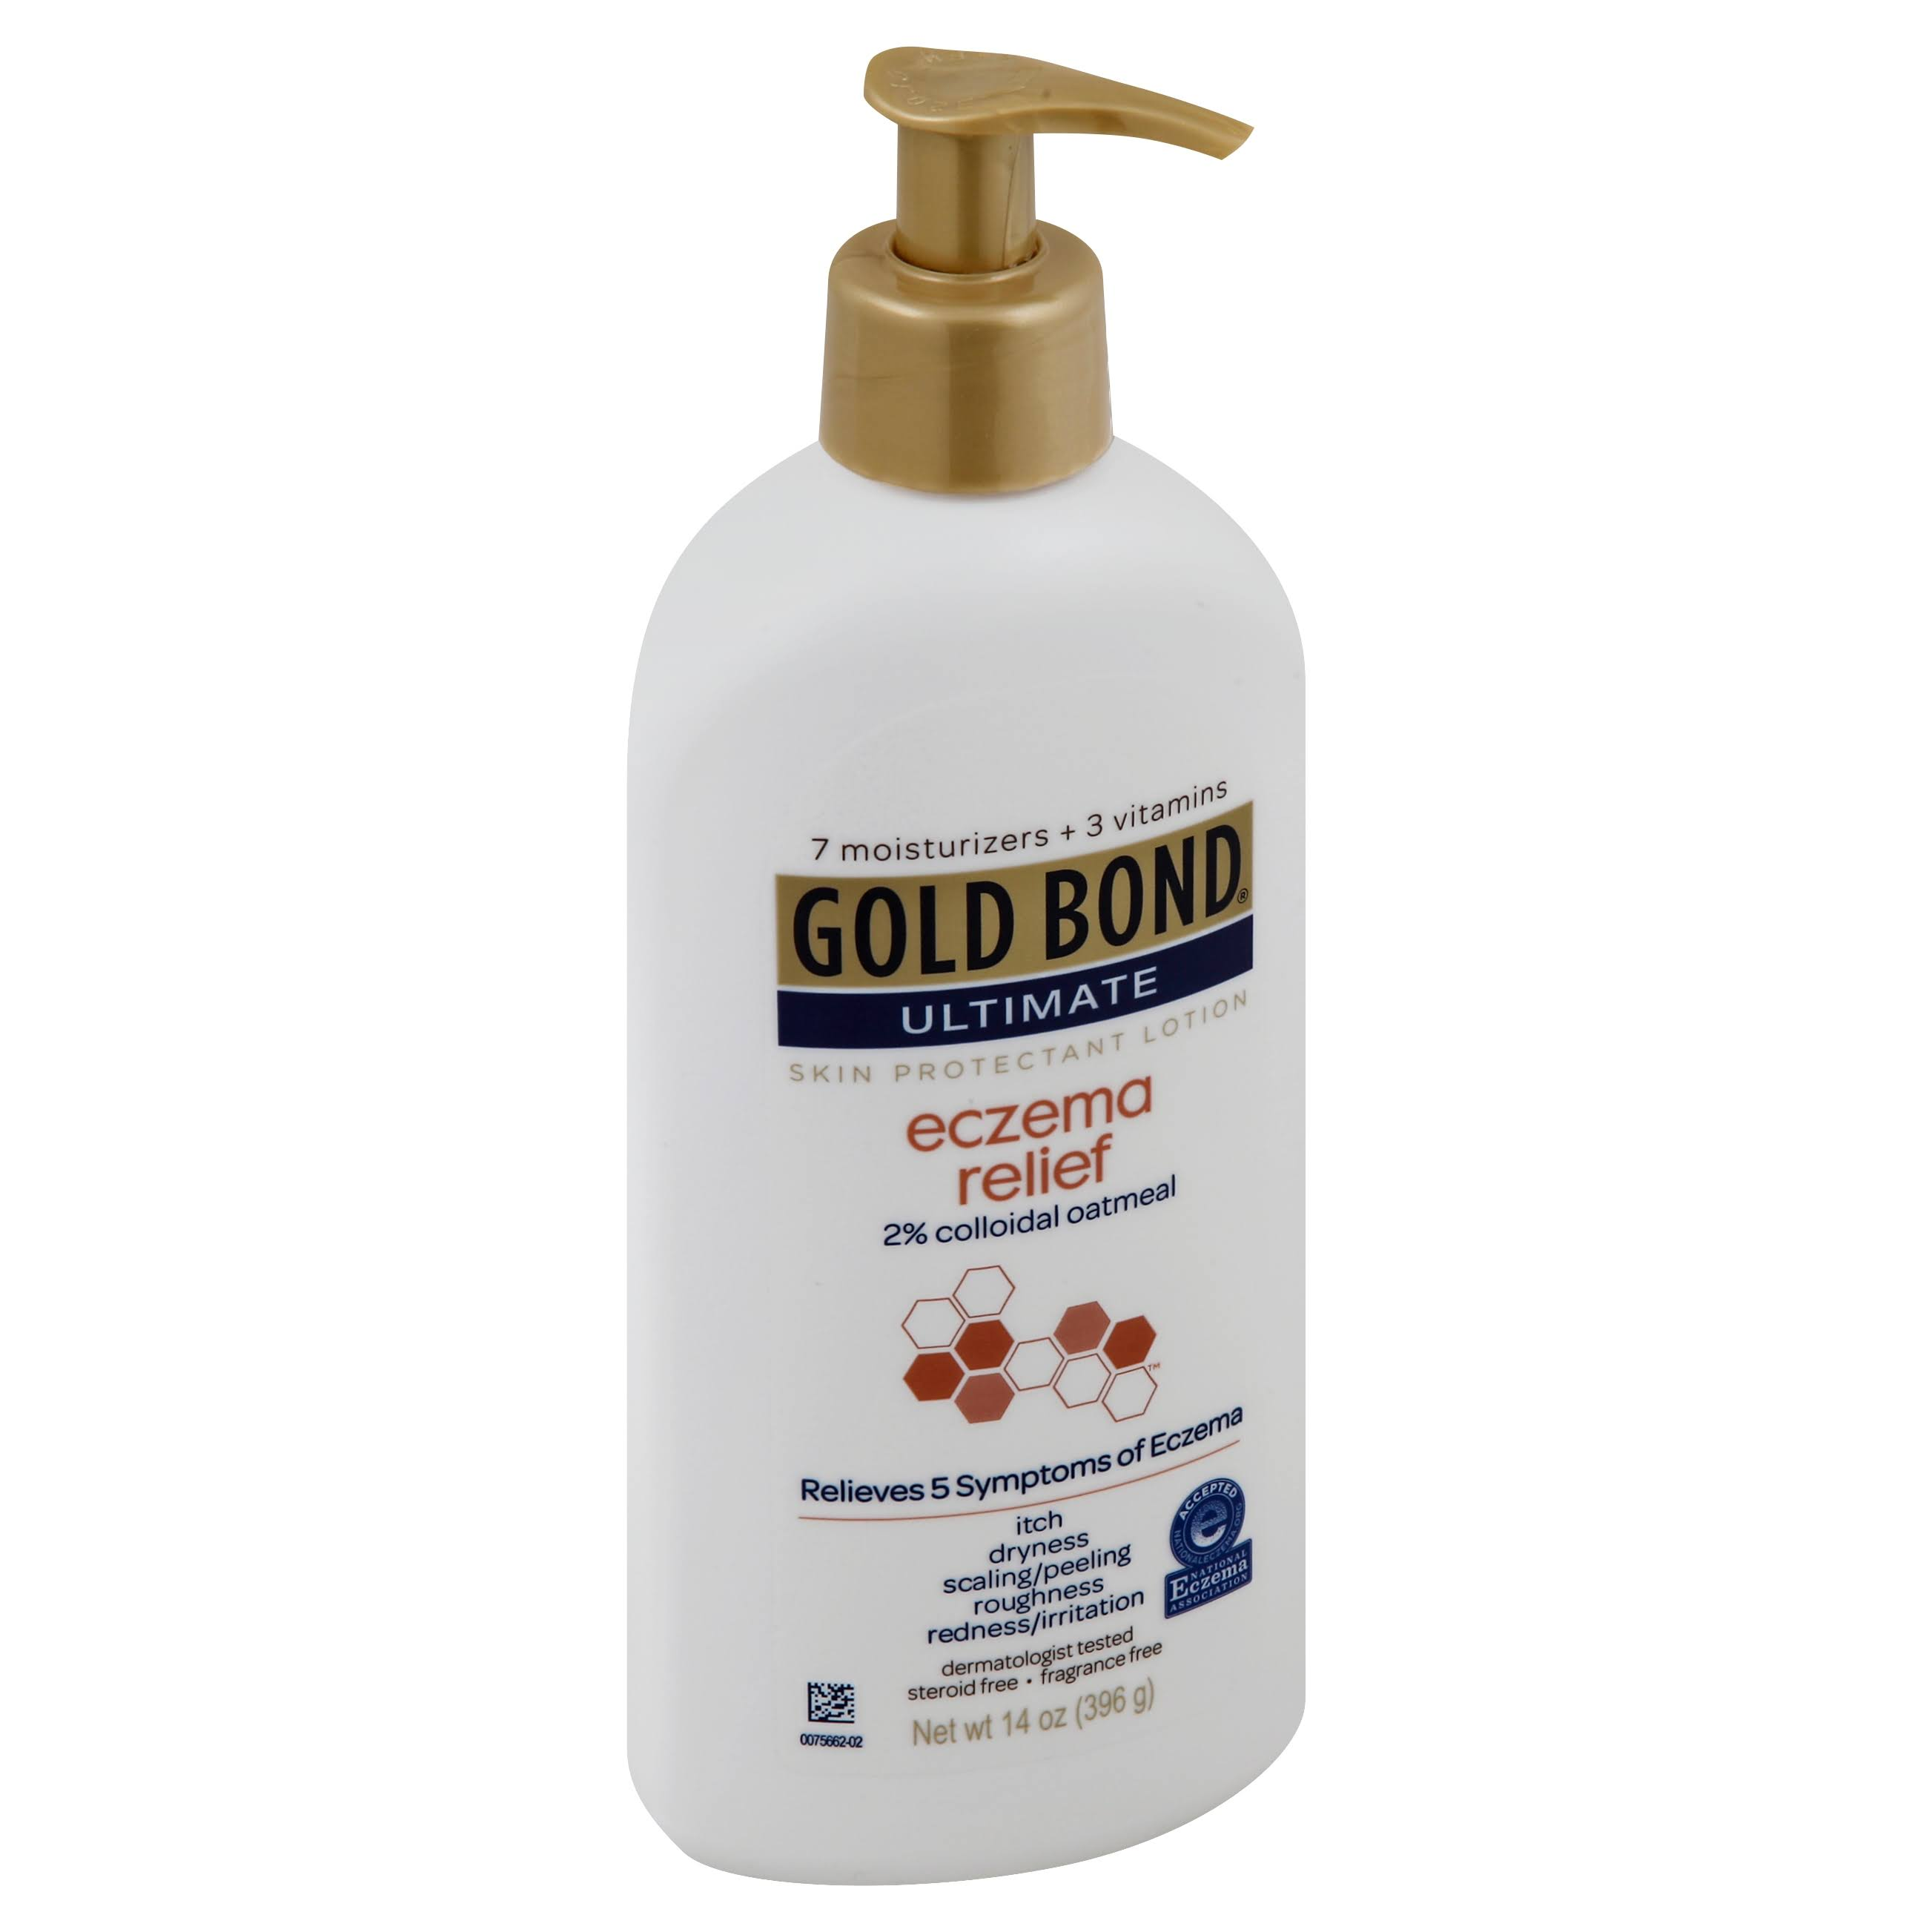 Gold Bond Ultimate Eczema Relief Skin Protectant Lotion - 410ml